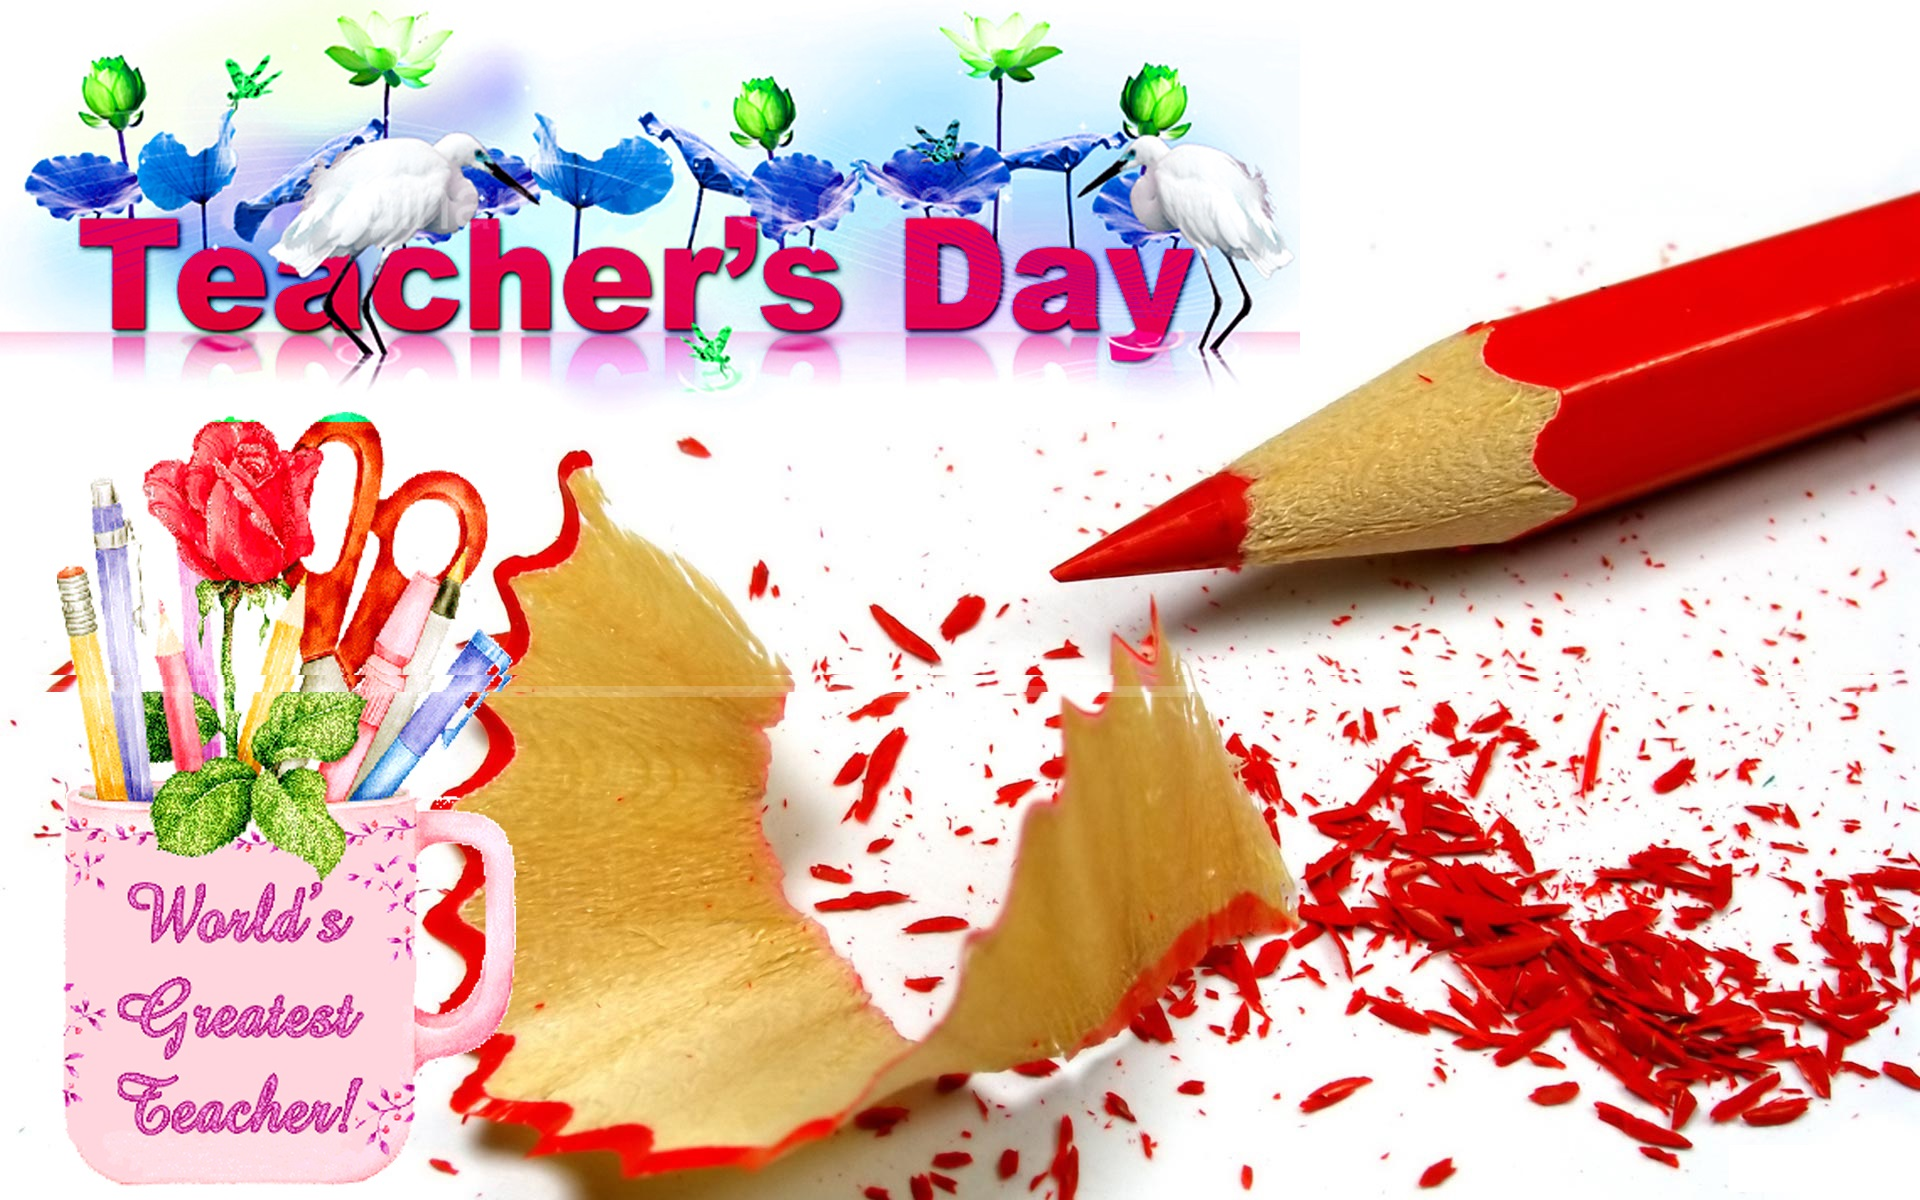 Teacher's Day 2019 Wallpapers